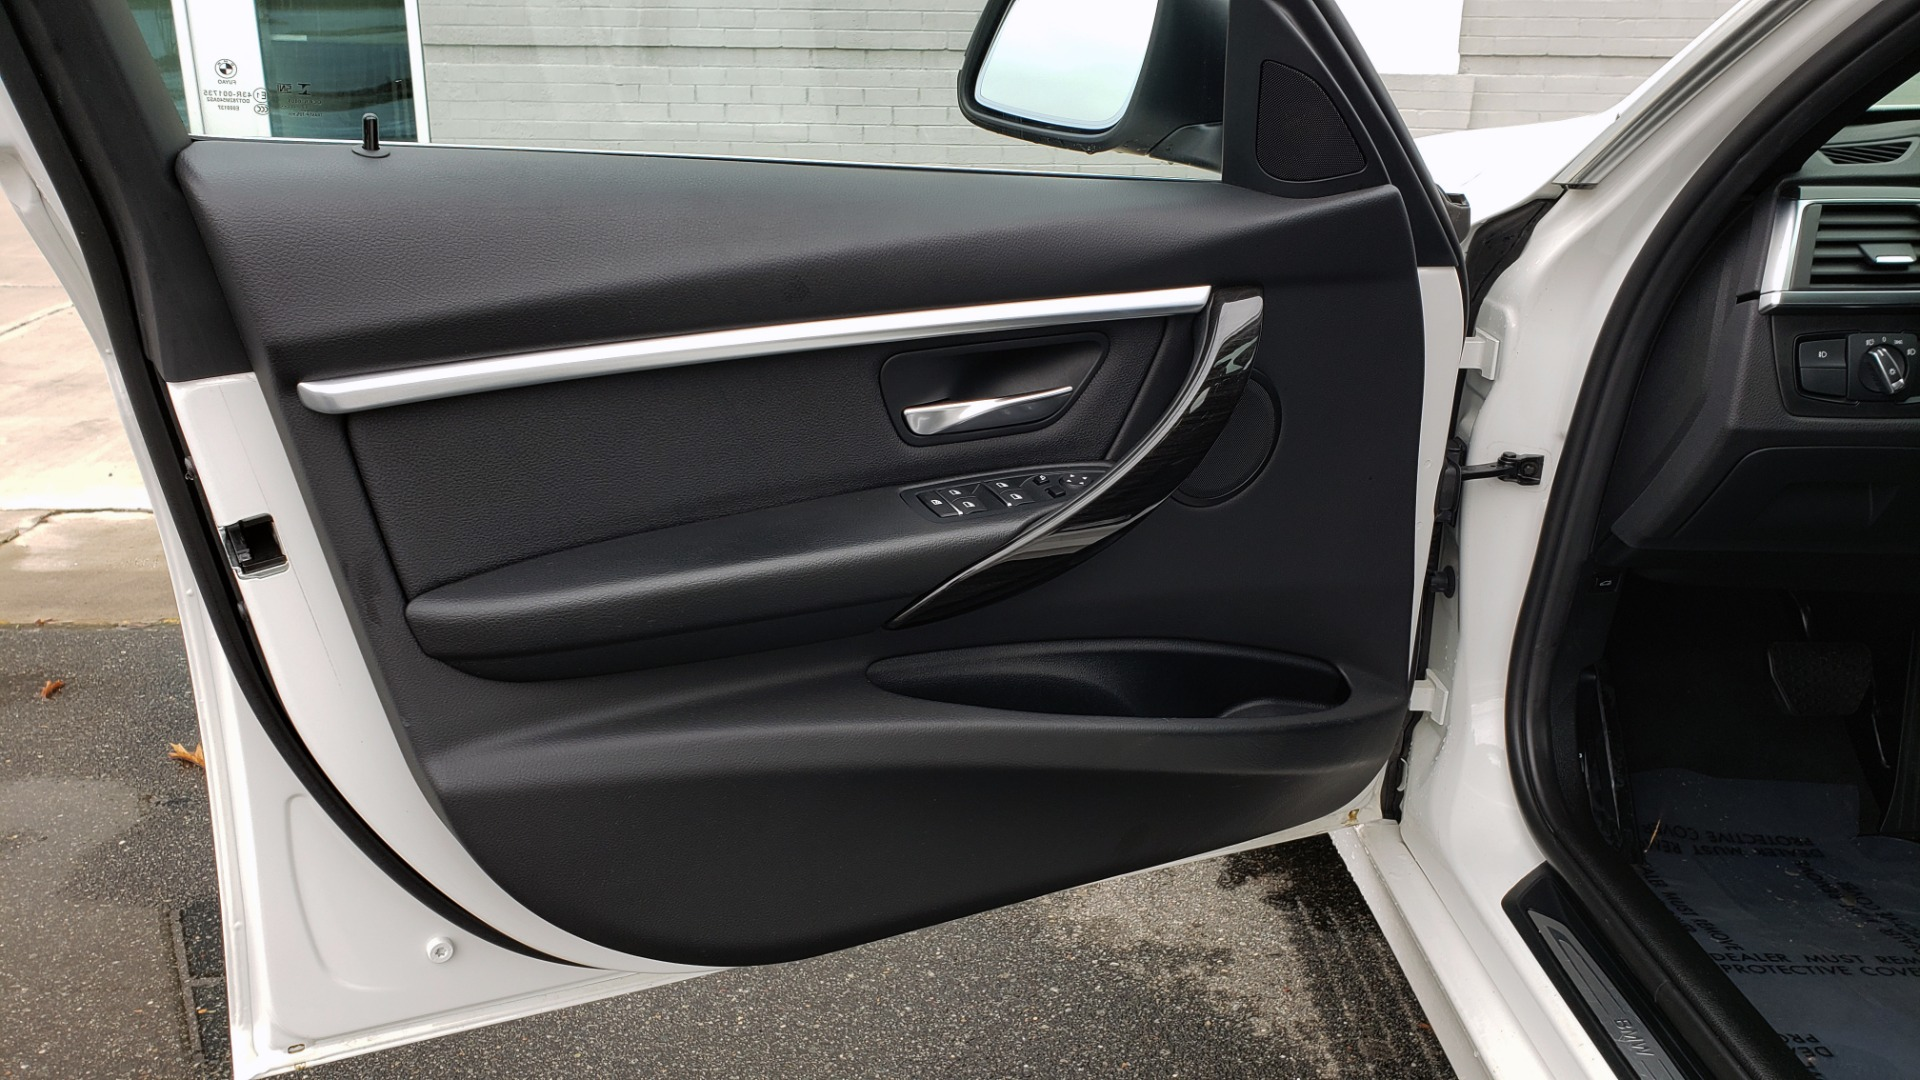 Used 2018 BMW 3 SERIES 330I XDRIVE / CONV PKG / SUNROOF / HTD STS / REARVIEW for sale $24,795 at Formula Imports in Charlotte NC 28227 31